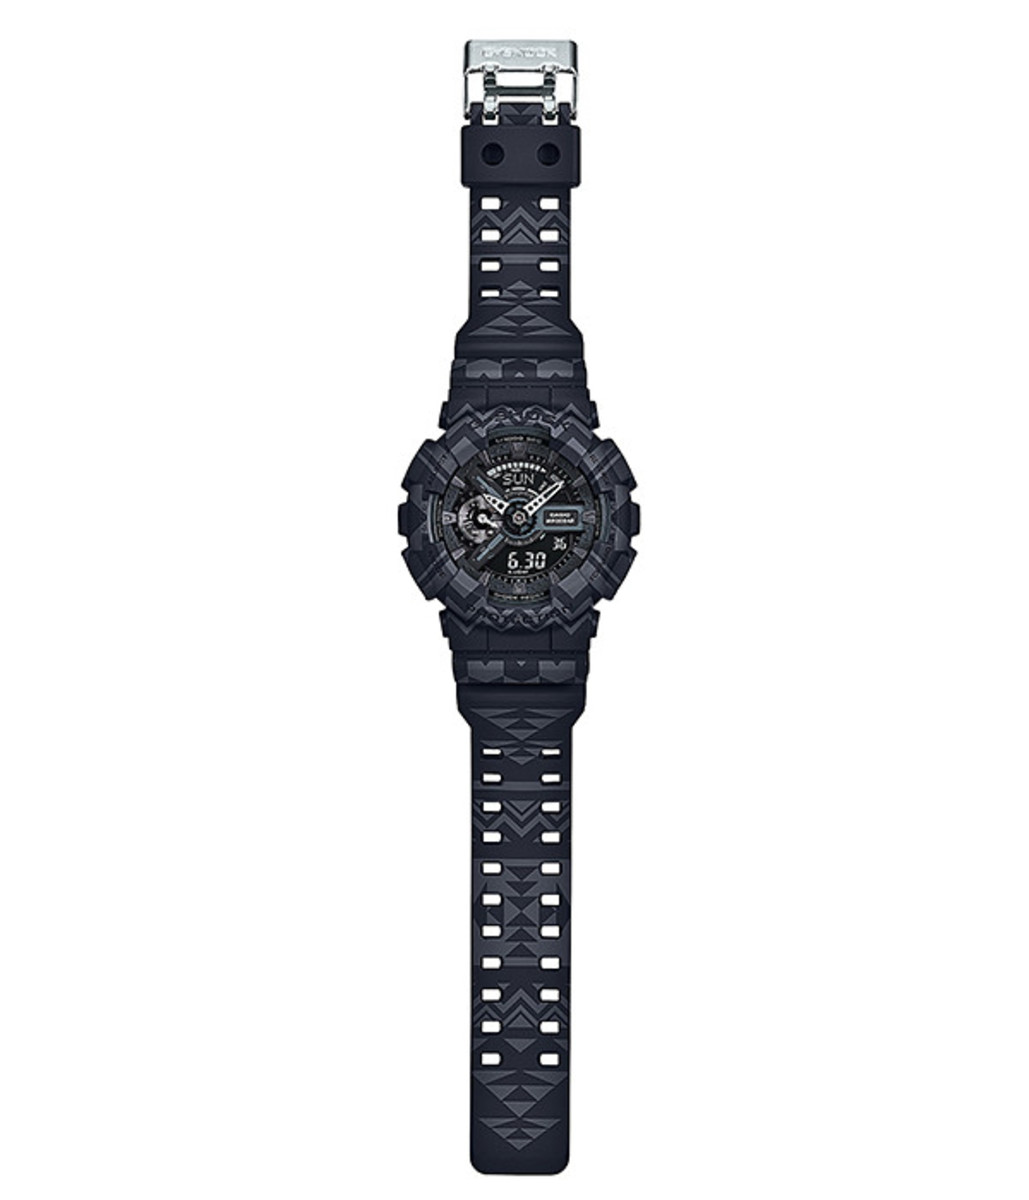 casio-g-shock-tribal-pattern-series-04.jpg